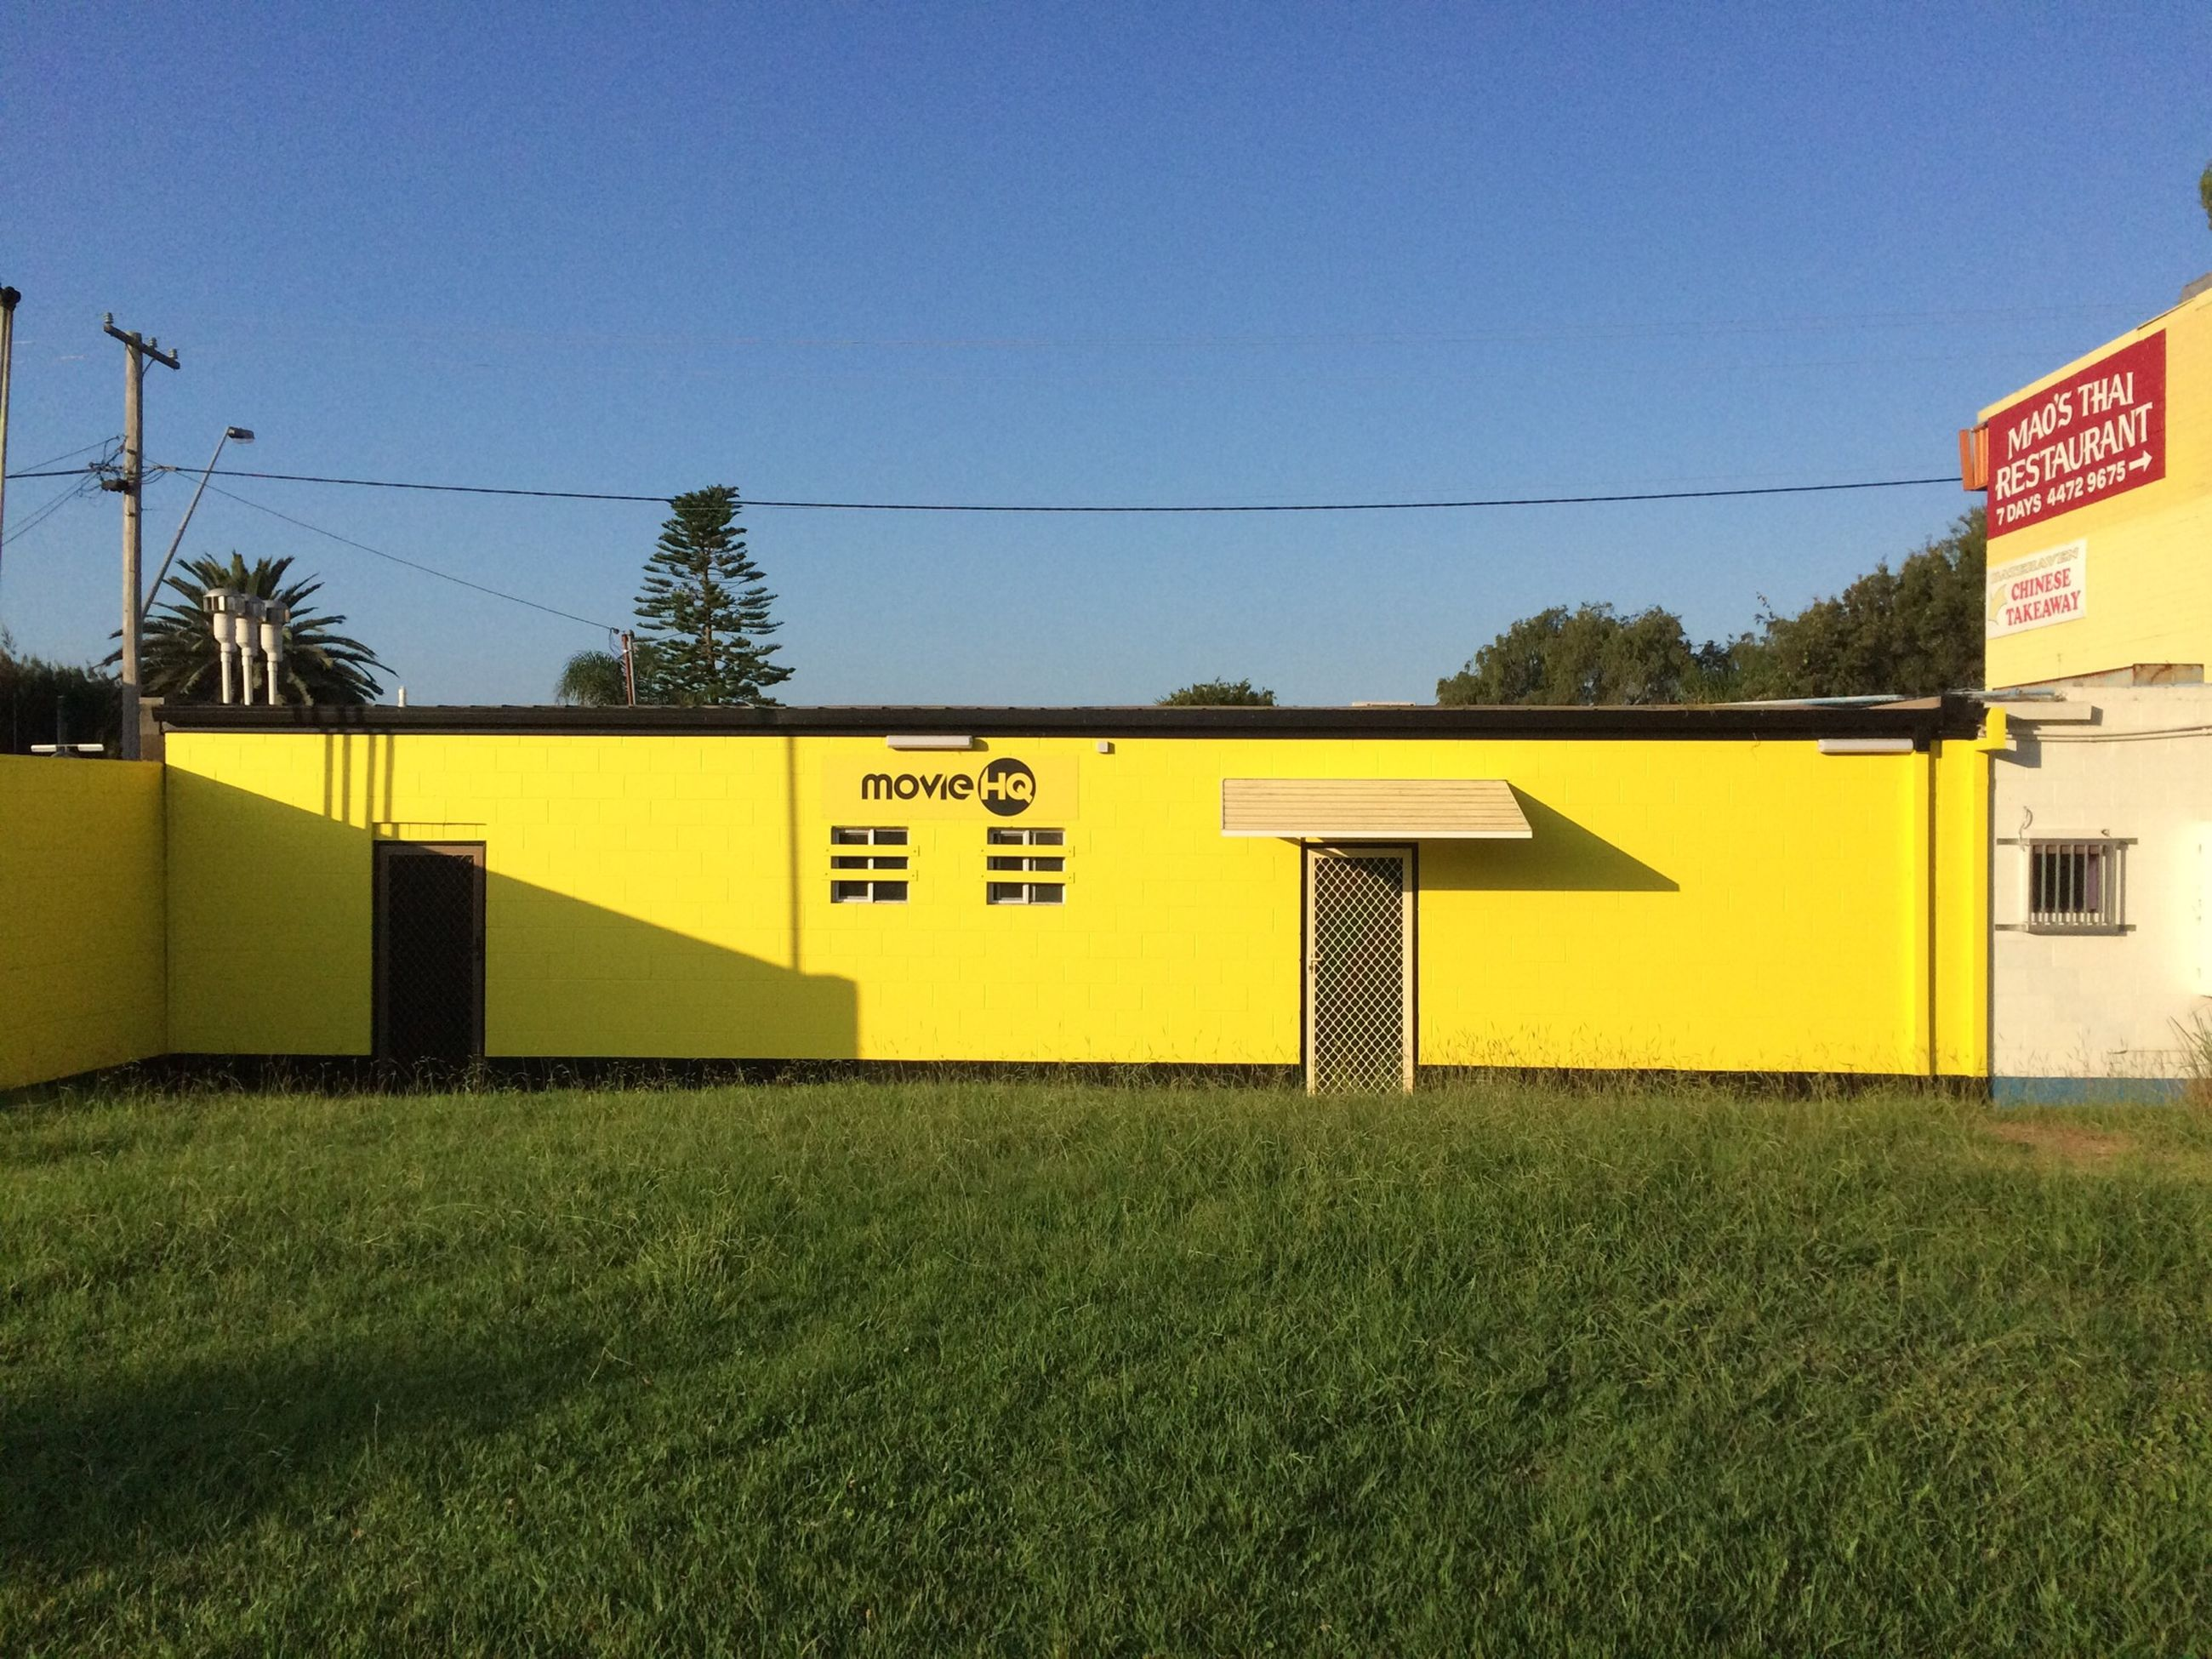 yellow, clear sky, communication, text, western script, built structure, grass, building exterior, architecture, copy space, information sign, field, sign, blue, road sign, guidance, outdoors, day, power line, no people